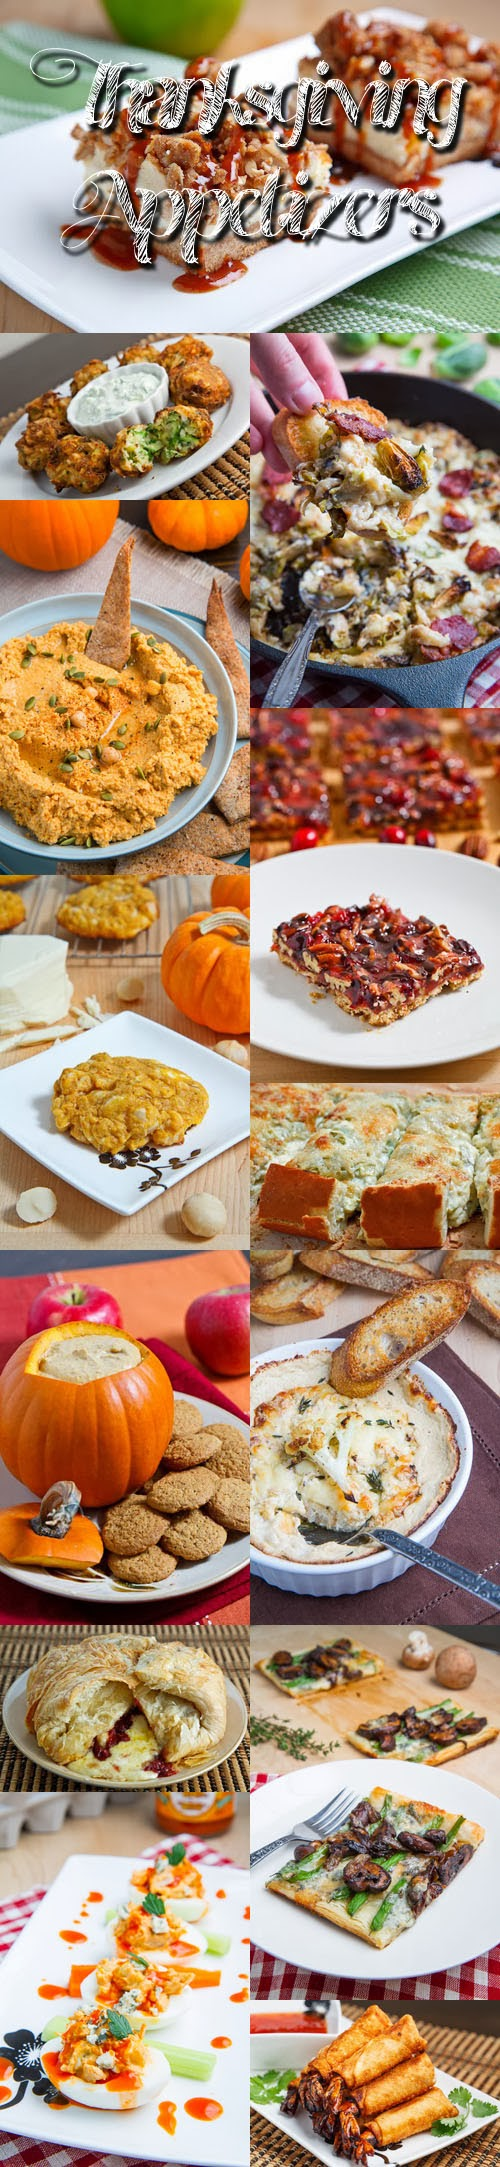 Thanksgiving Appetizer Recipes On Closet Cooking